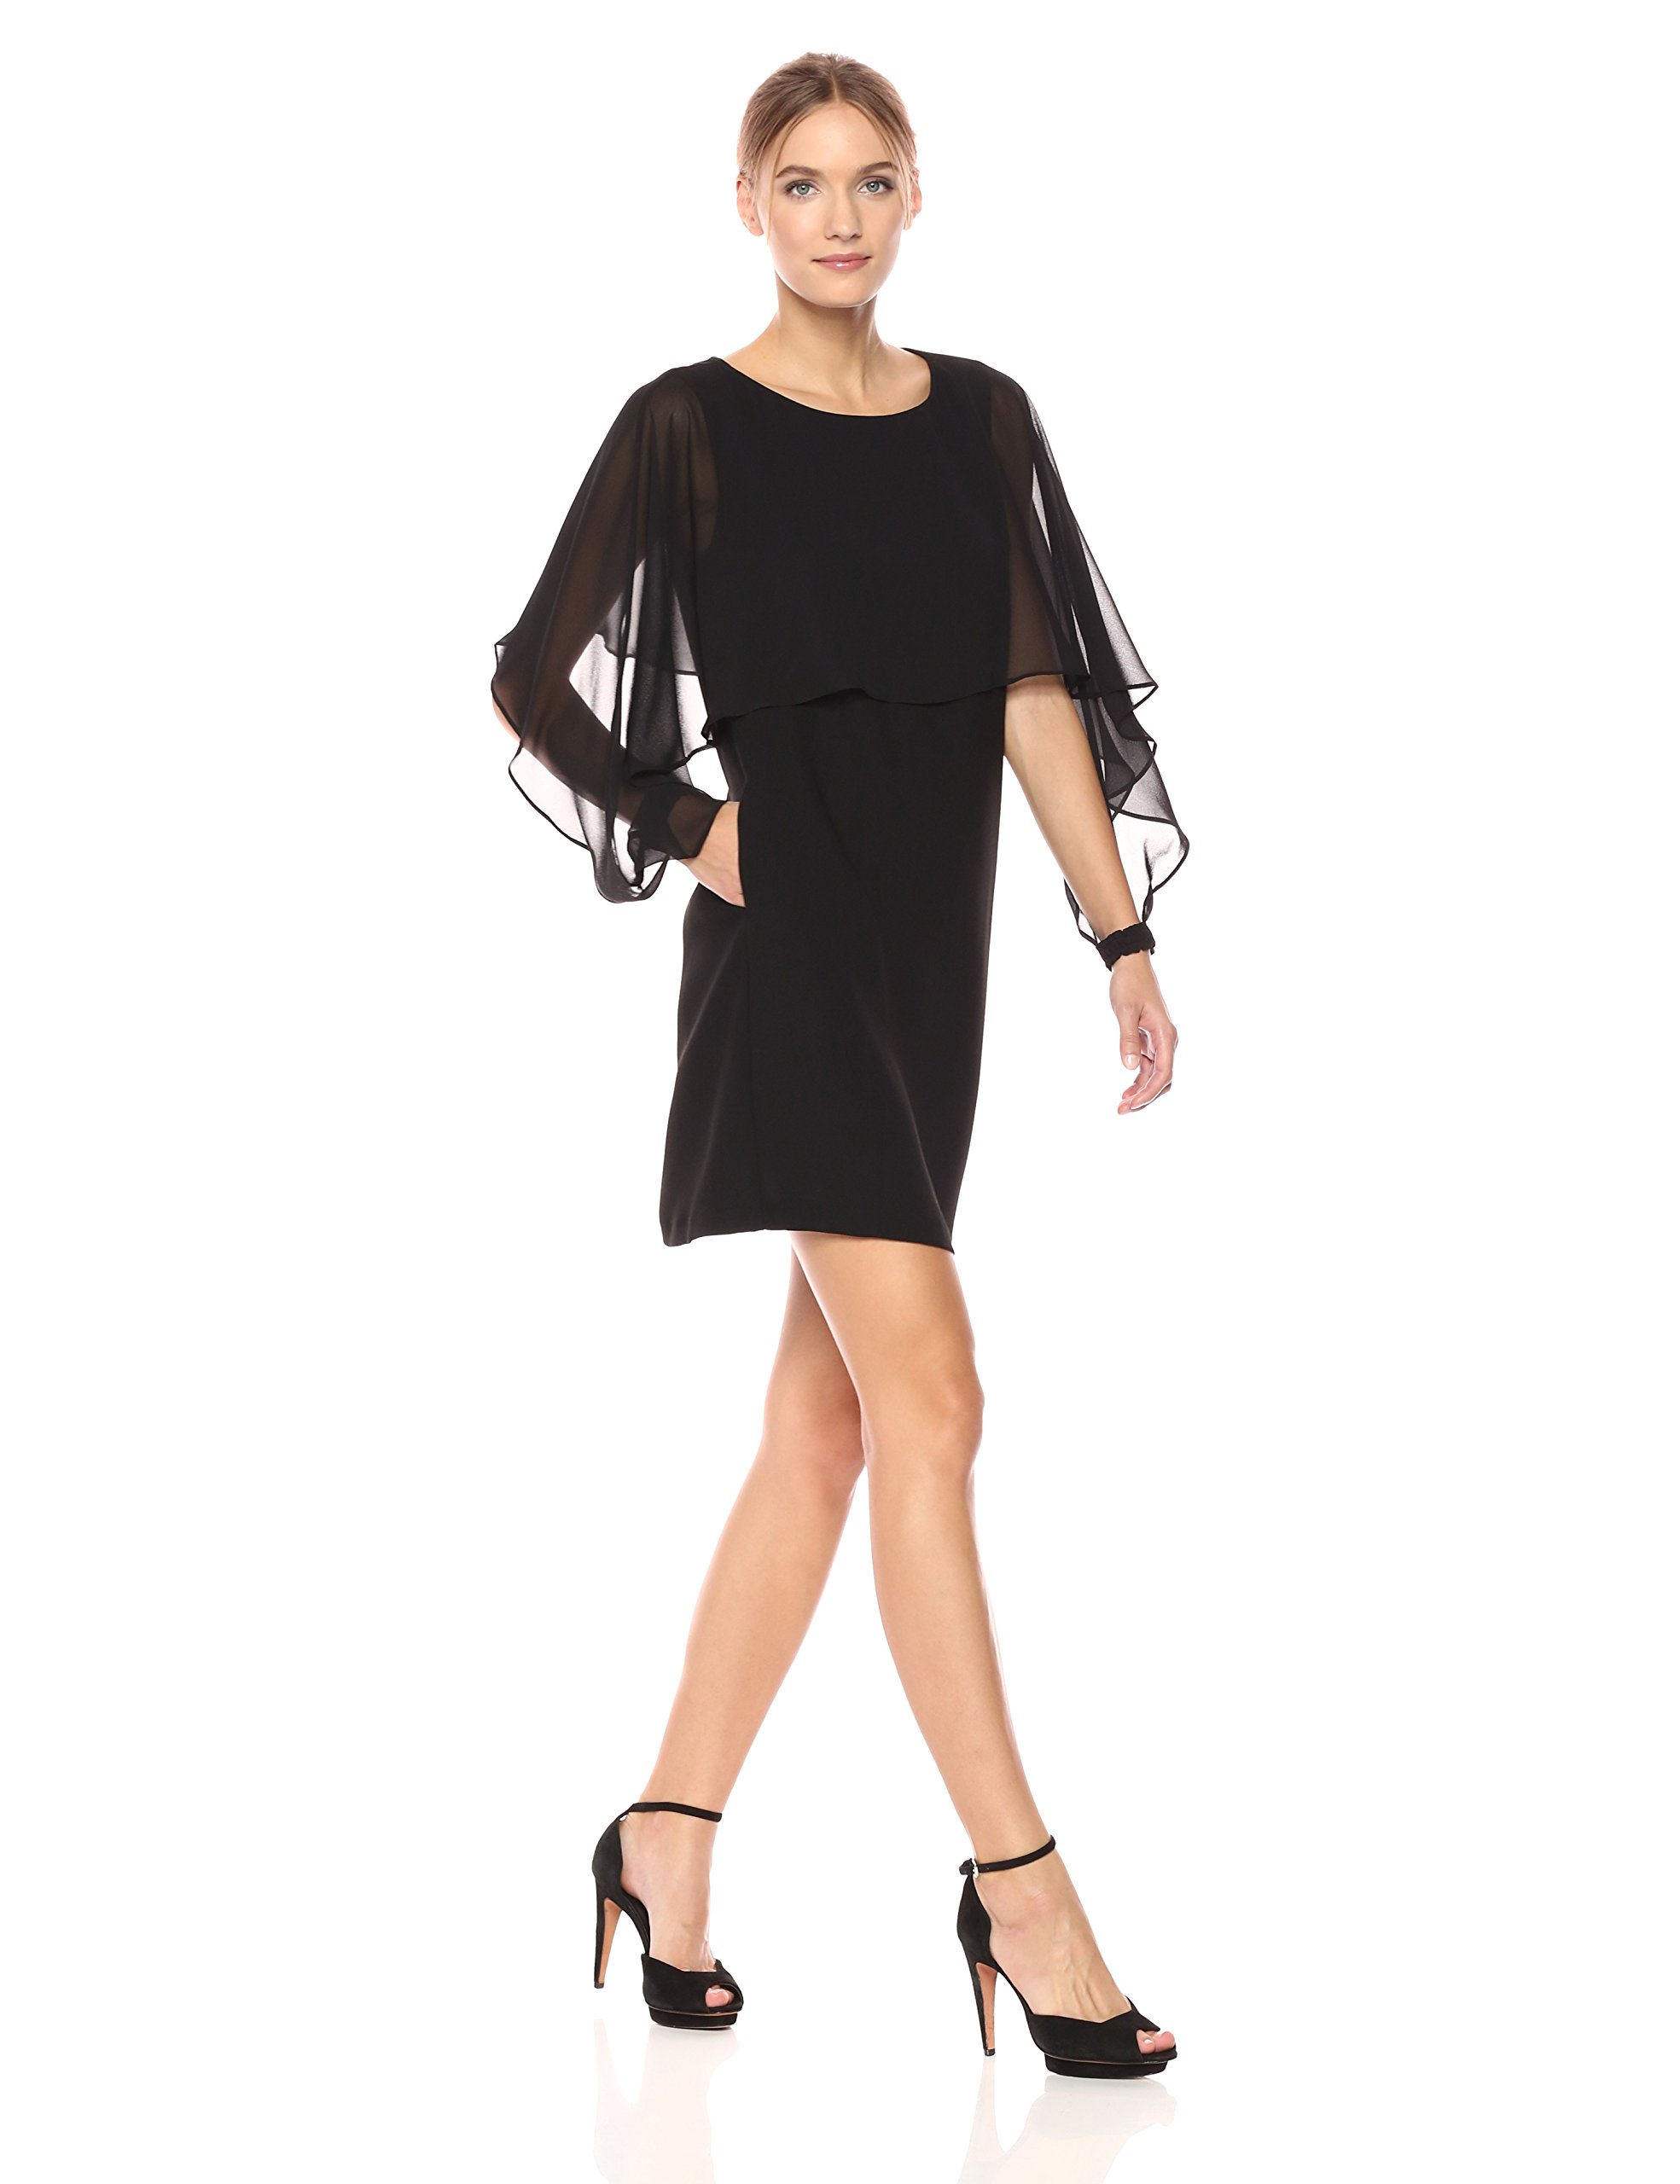 Nanette Nanette Lepore Women's Long Sleeve Shift Dress W/Chiffon Popover, Very Black, 12